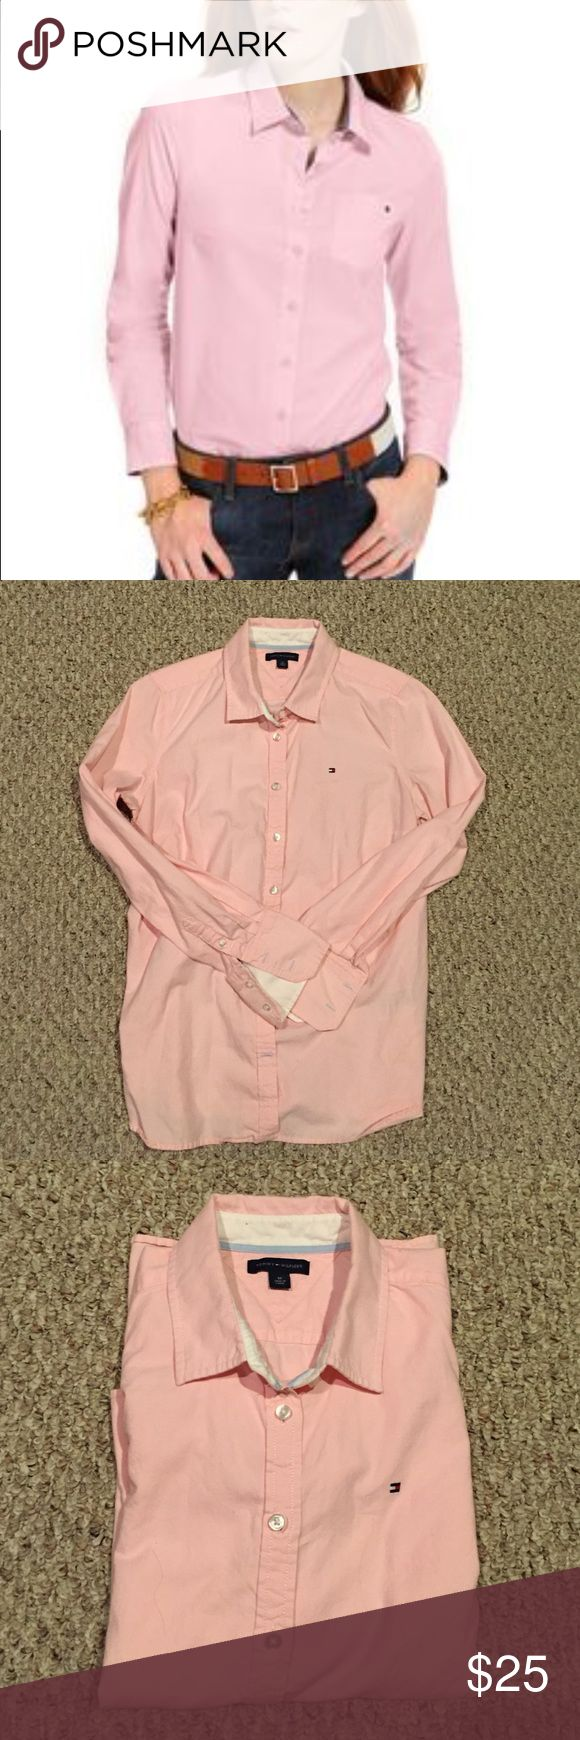 Classic Women's Oxford Shirt Classic oxford. Perfect for any occasion. This TH shirt is in excellent condition. Tommy Hilfiger Tops Button Down Shirts